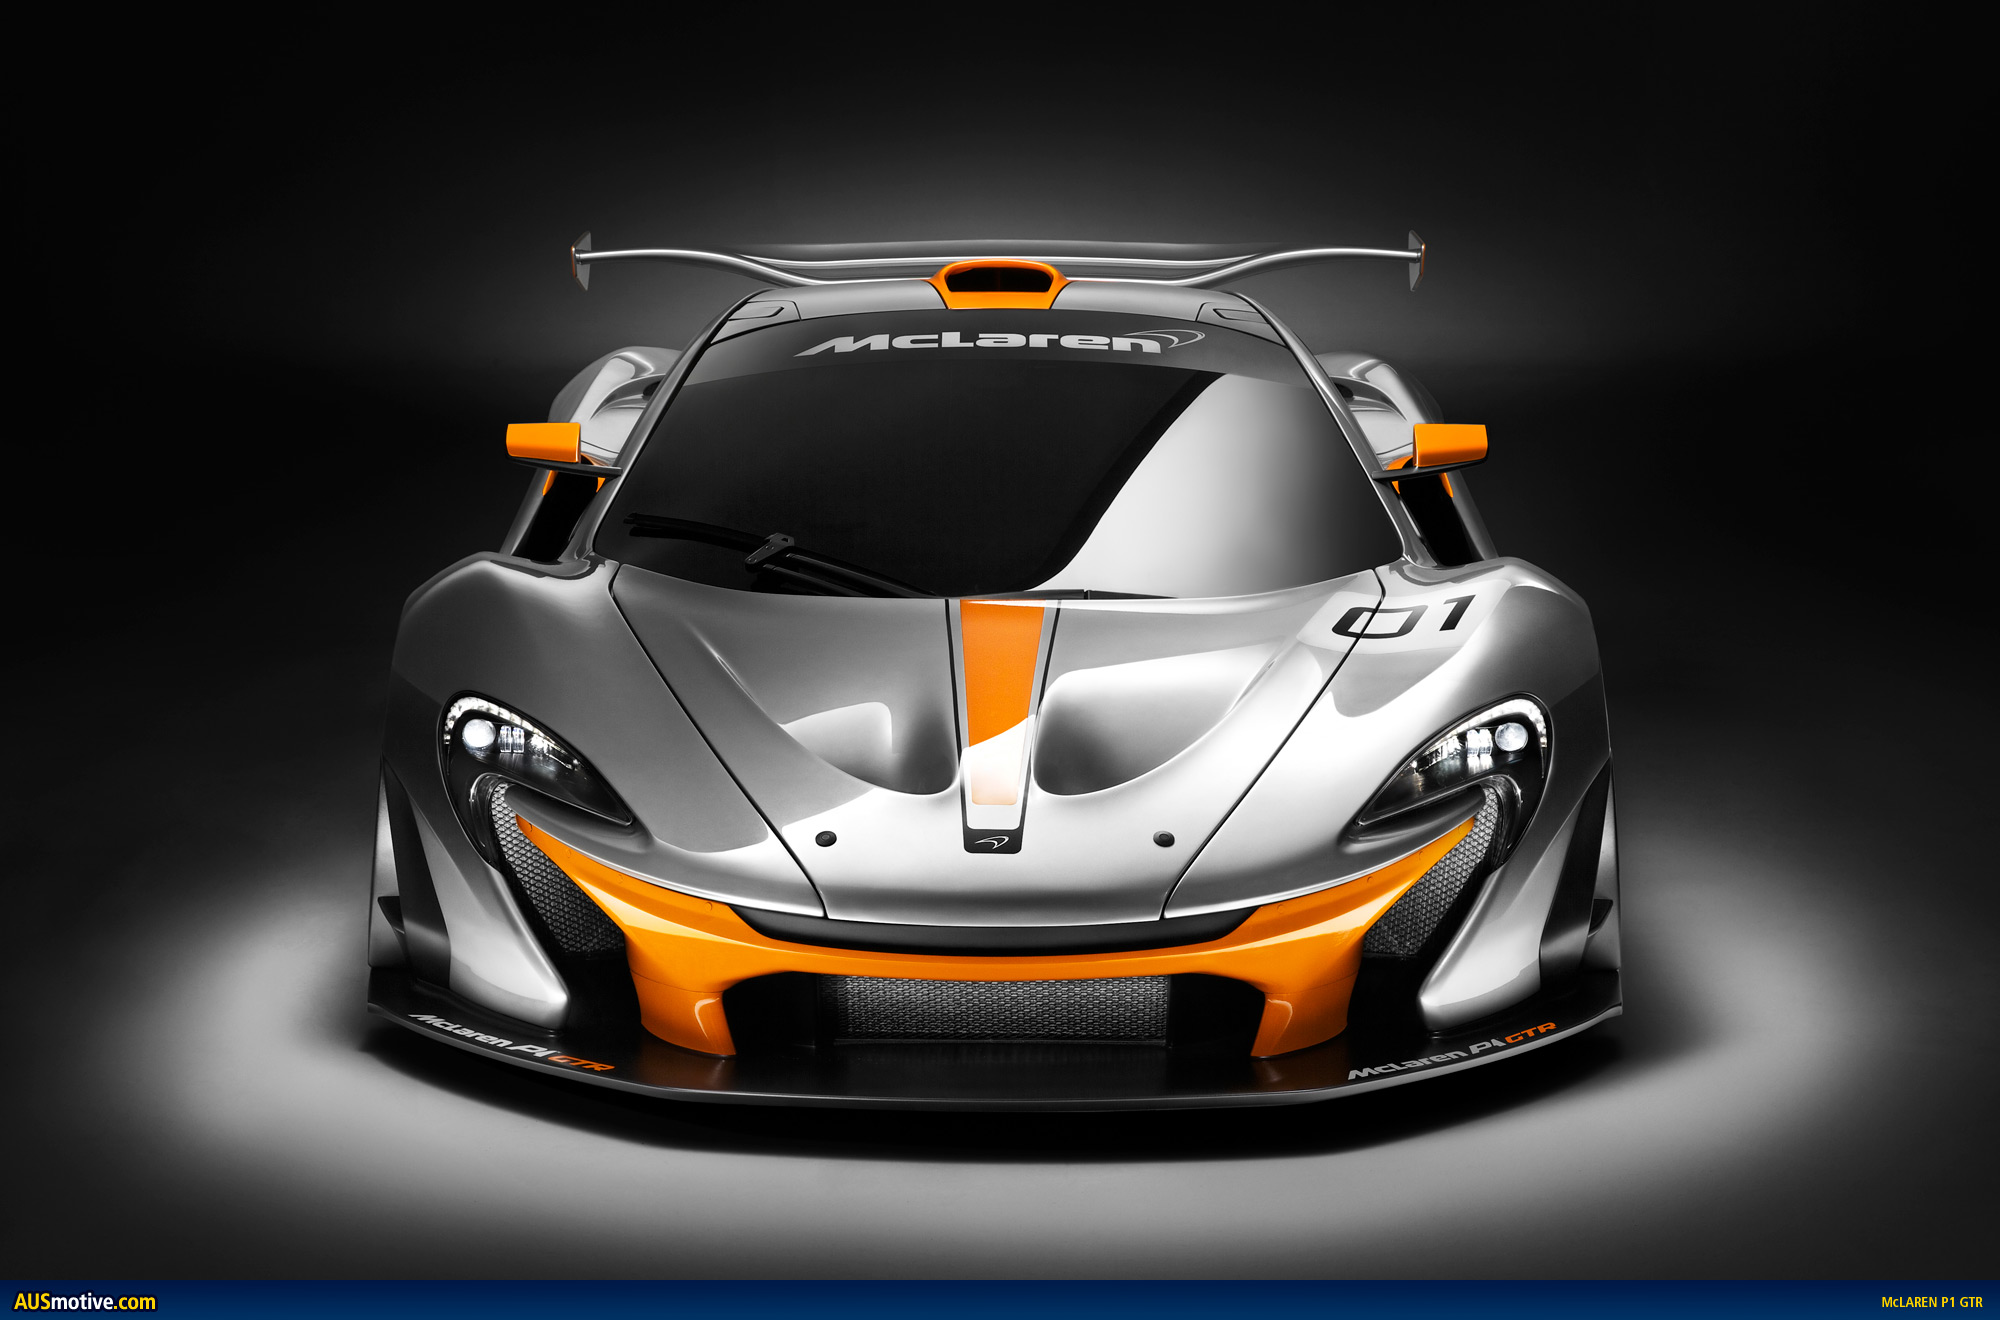 ausmotivecom 187 mclaren p1 gtr design concept revealed